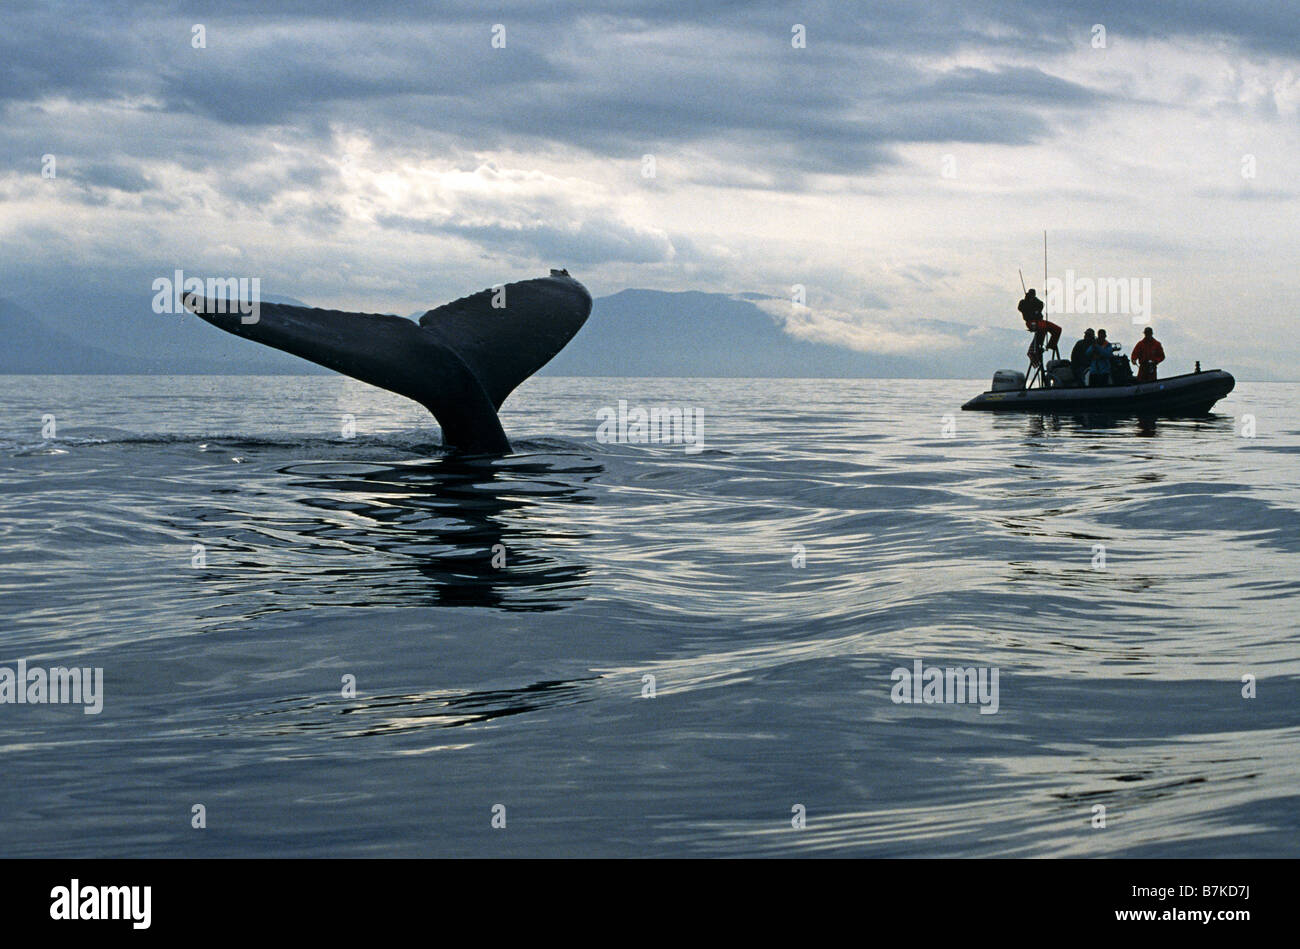 Humpback Whale sounding, watched by researchers, Alaska - Stock Image